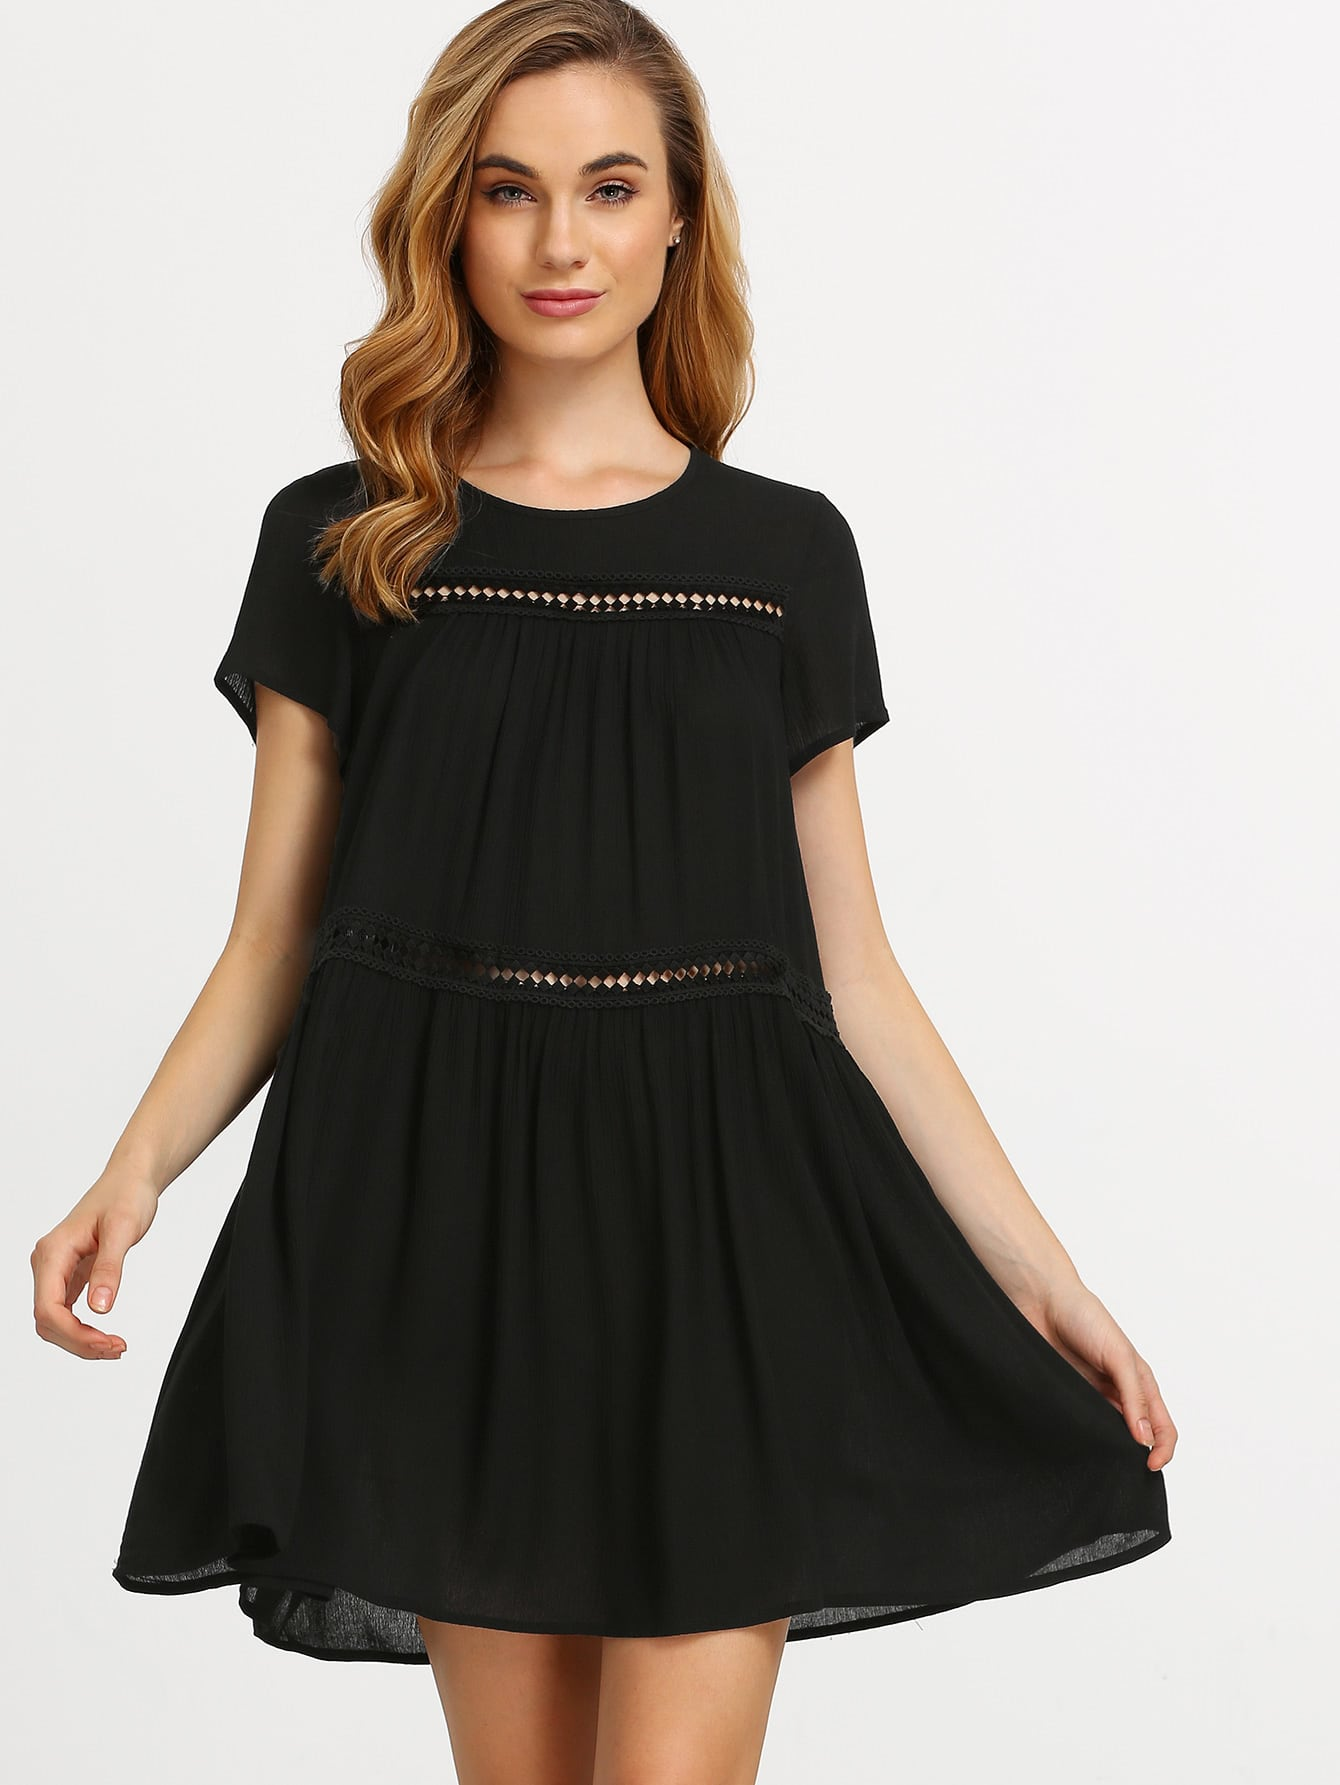 Short Sleeve Shift Dress flounce short sleeve shift sleep dress